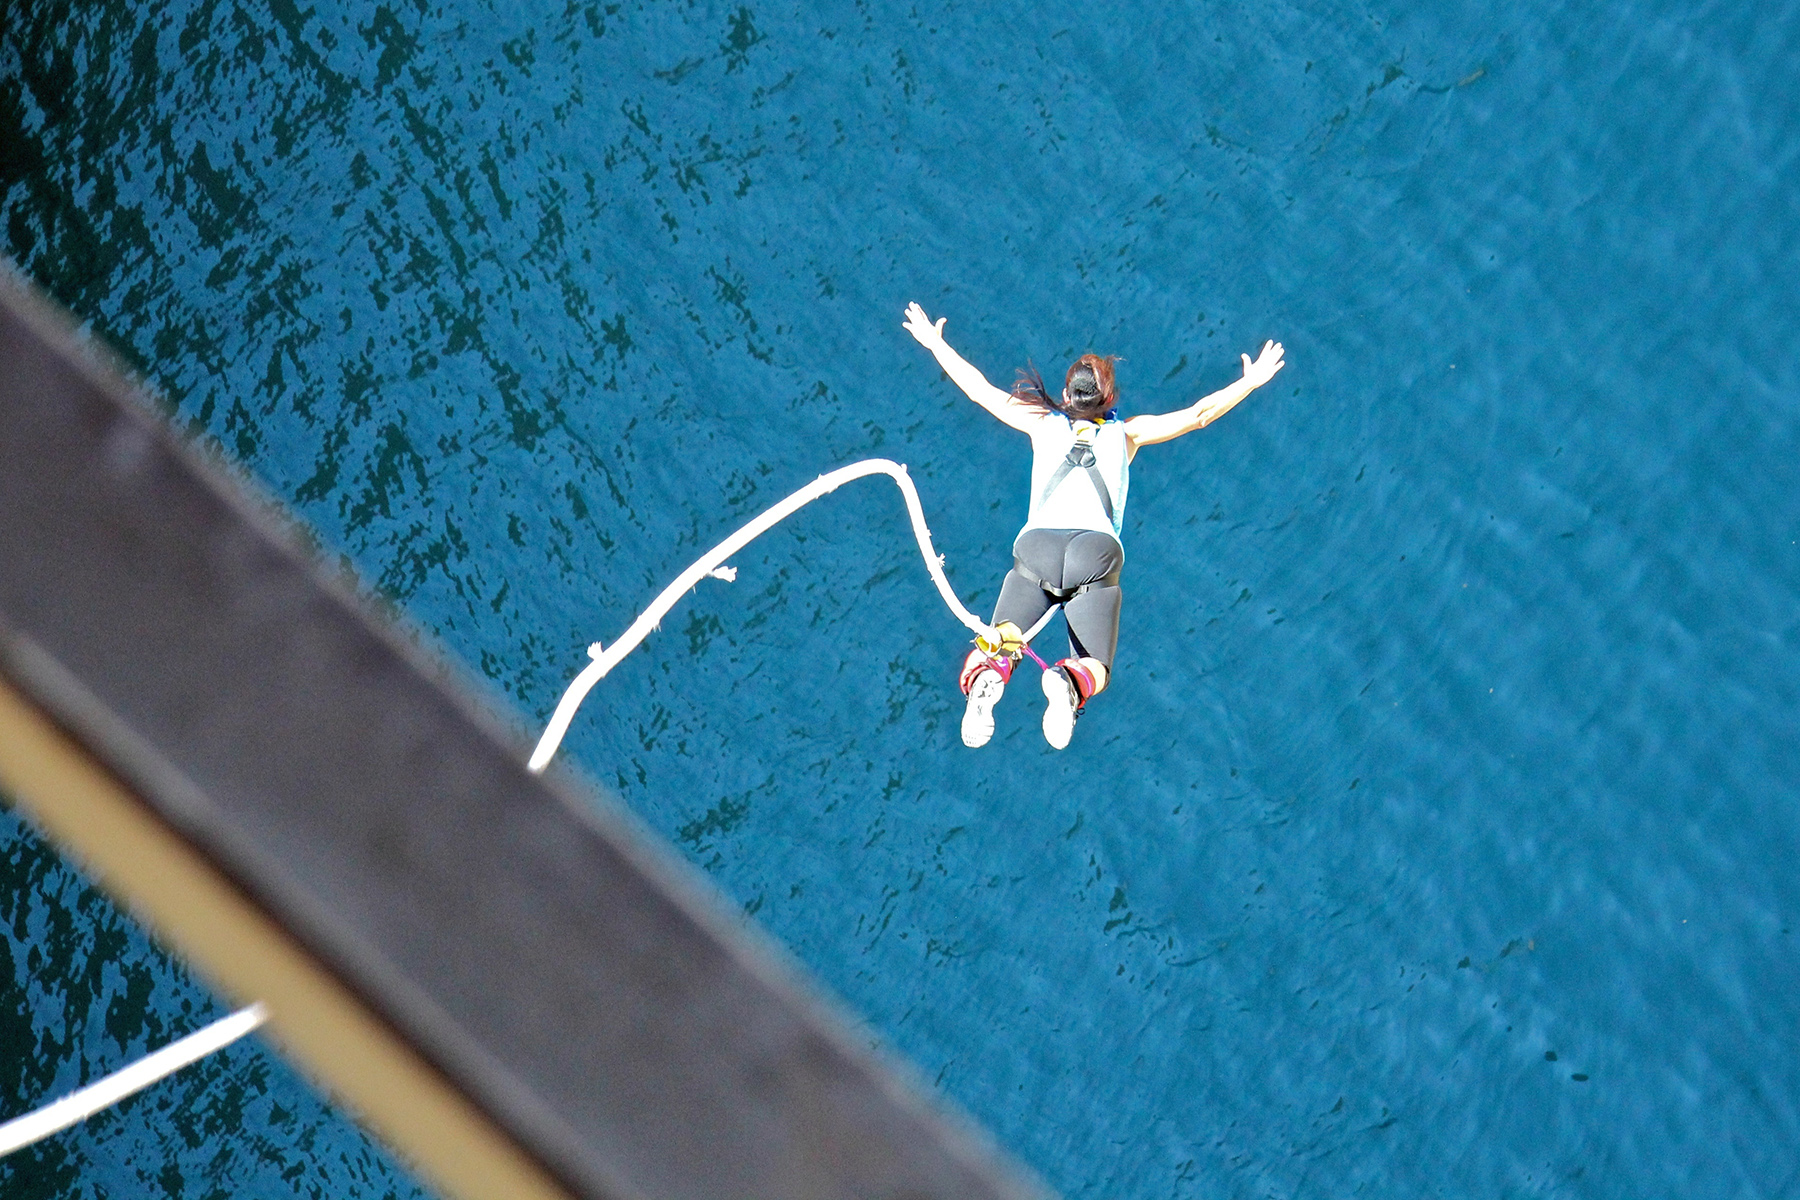 Bungee jumping in the Corinth Canal